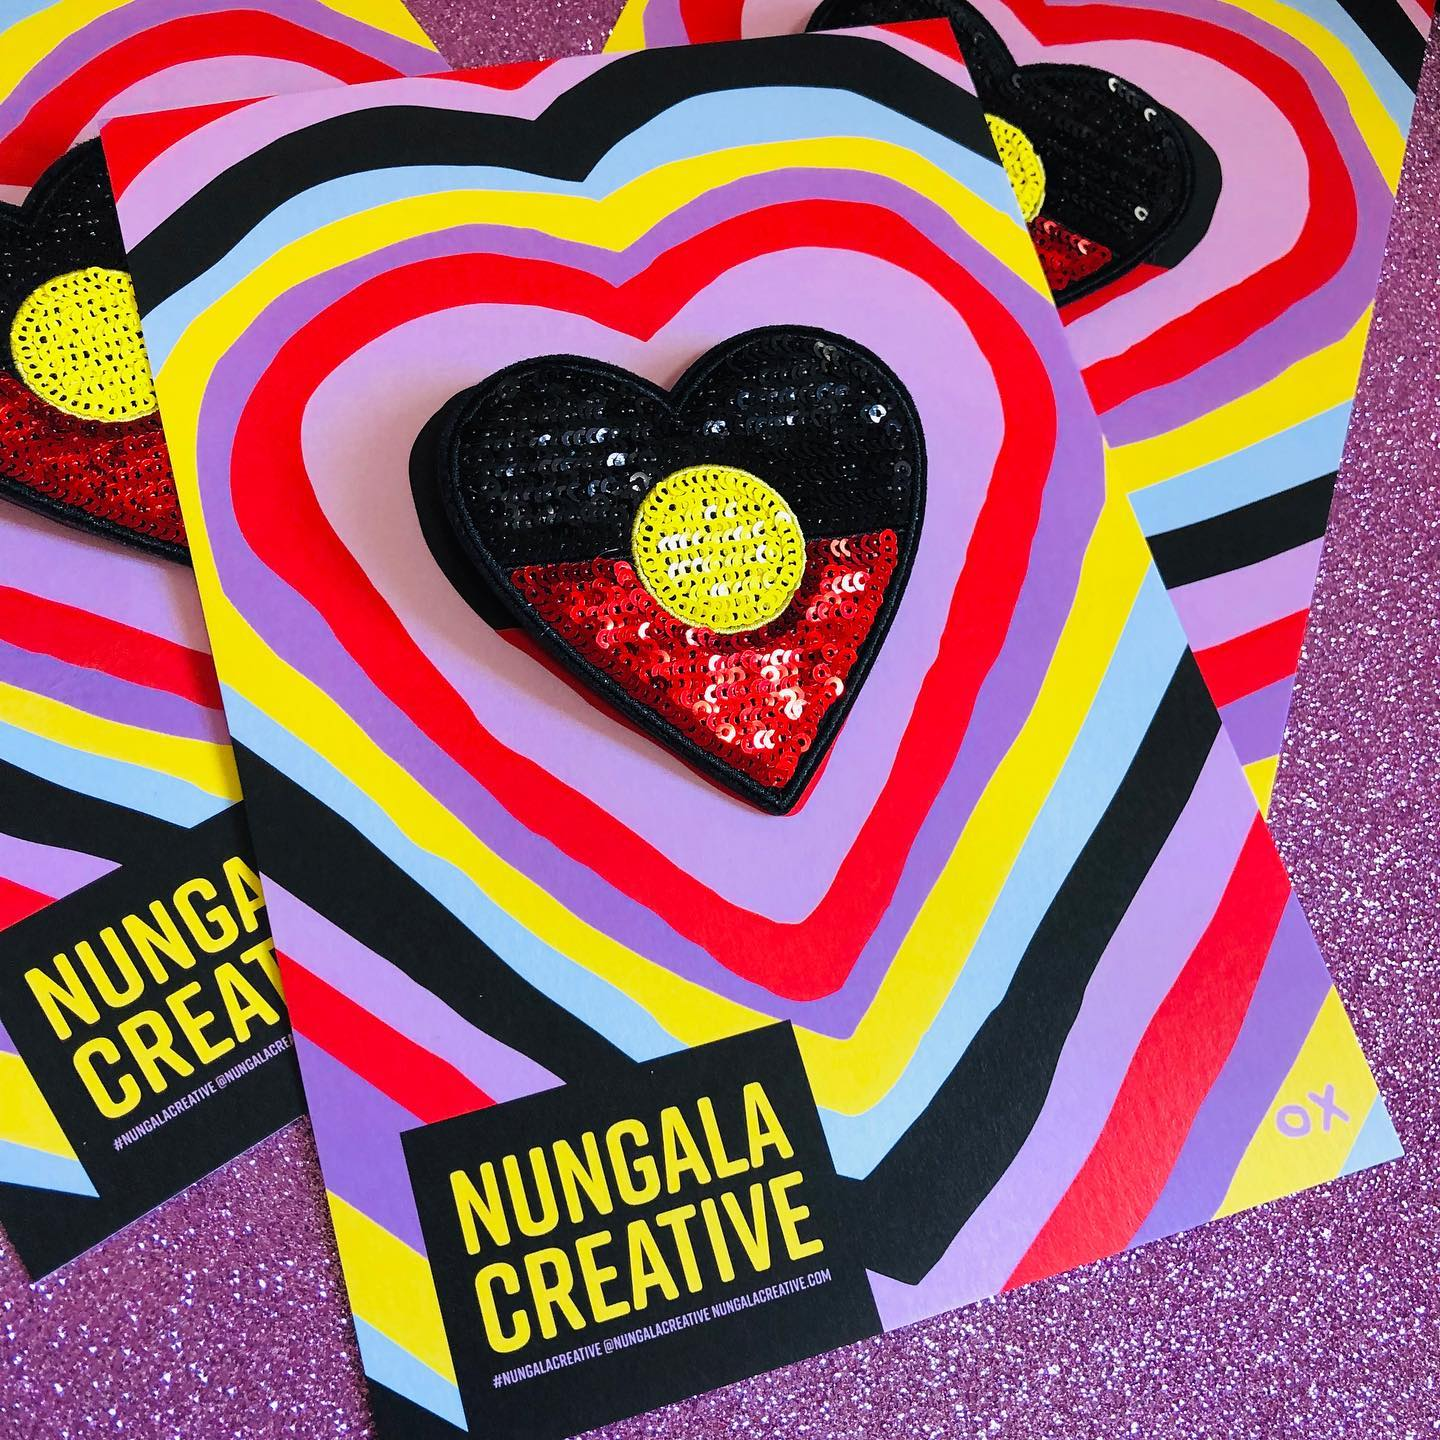 NUNGALA CREATIVE - NUNGALACREATIVE.COMNungala Creative is a 100% Aboriginal owned and operated creative communications agency. Established by proud Warumungu Wombaya woman Jessica Johnson, Nungala Creative produces innovative content with a distinct Aboriginal voice.